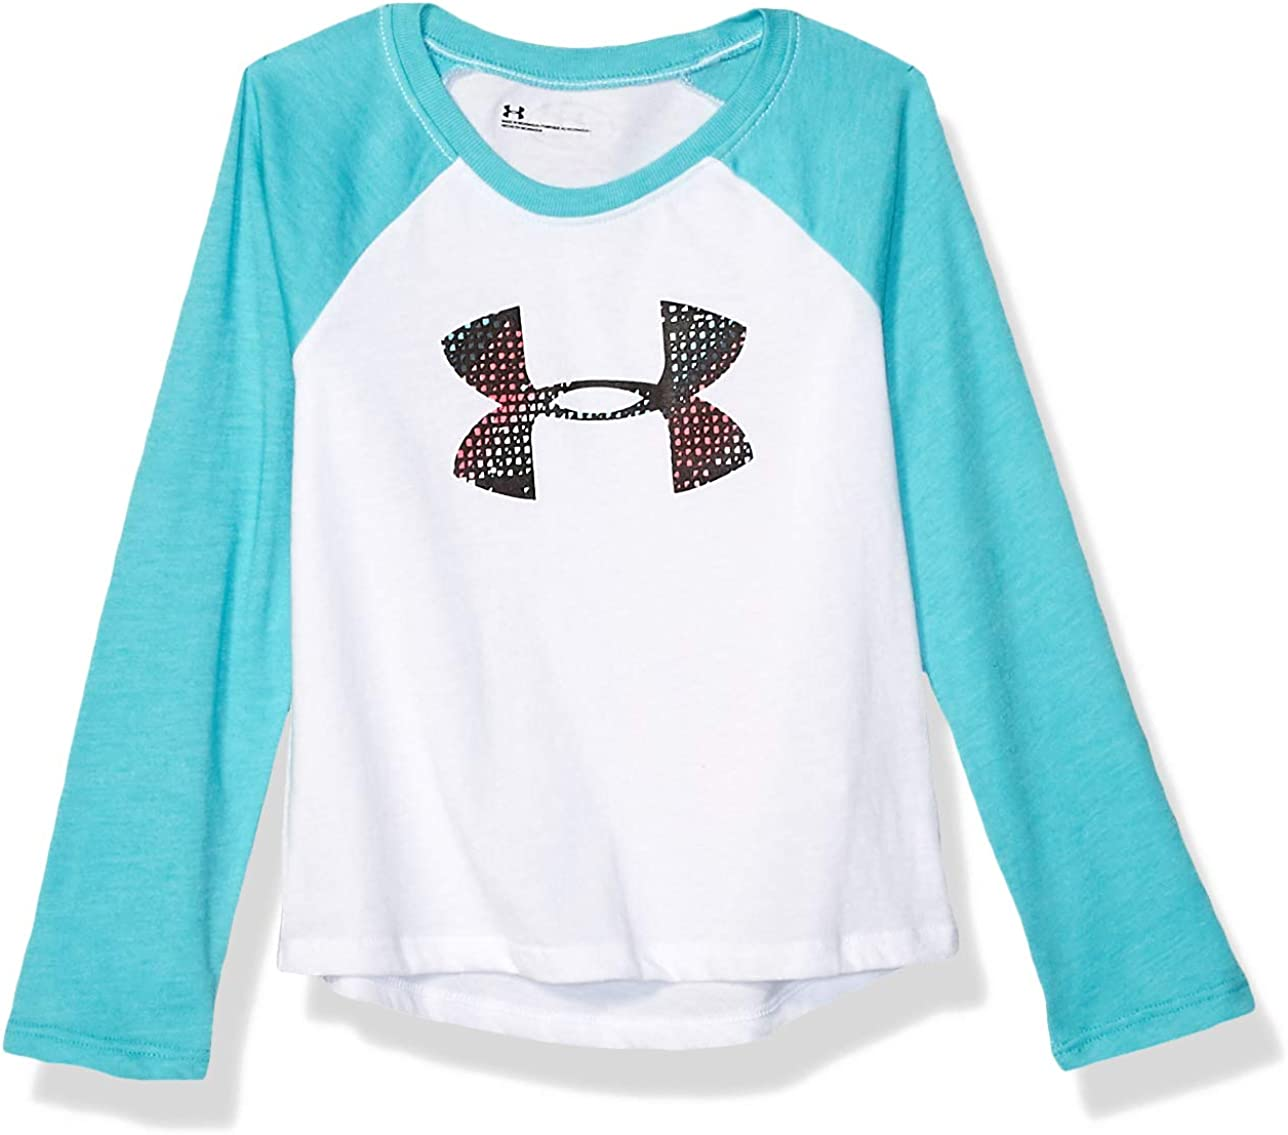 Under Armour Girls' Max 44% OFF Heart Limited price LS UA